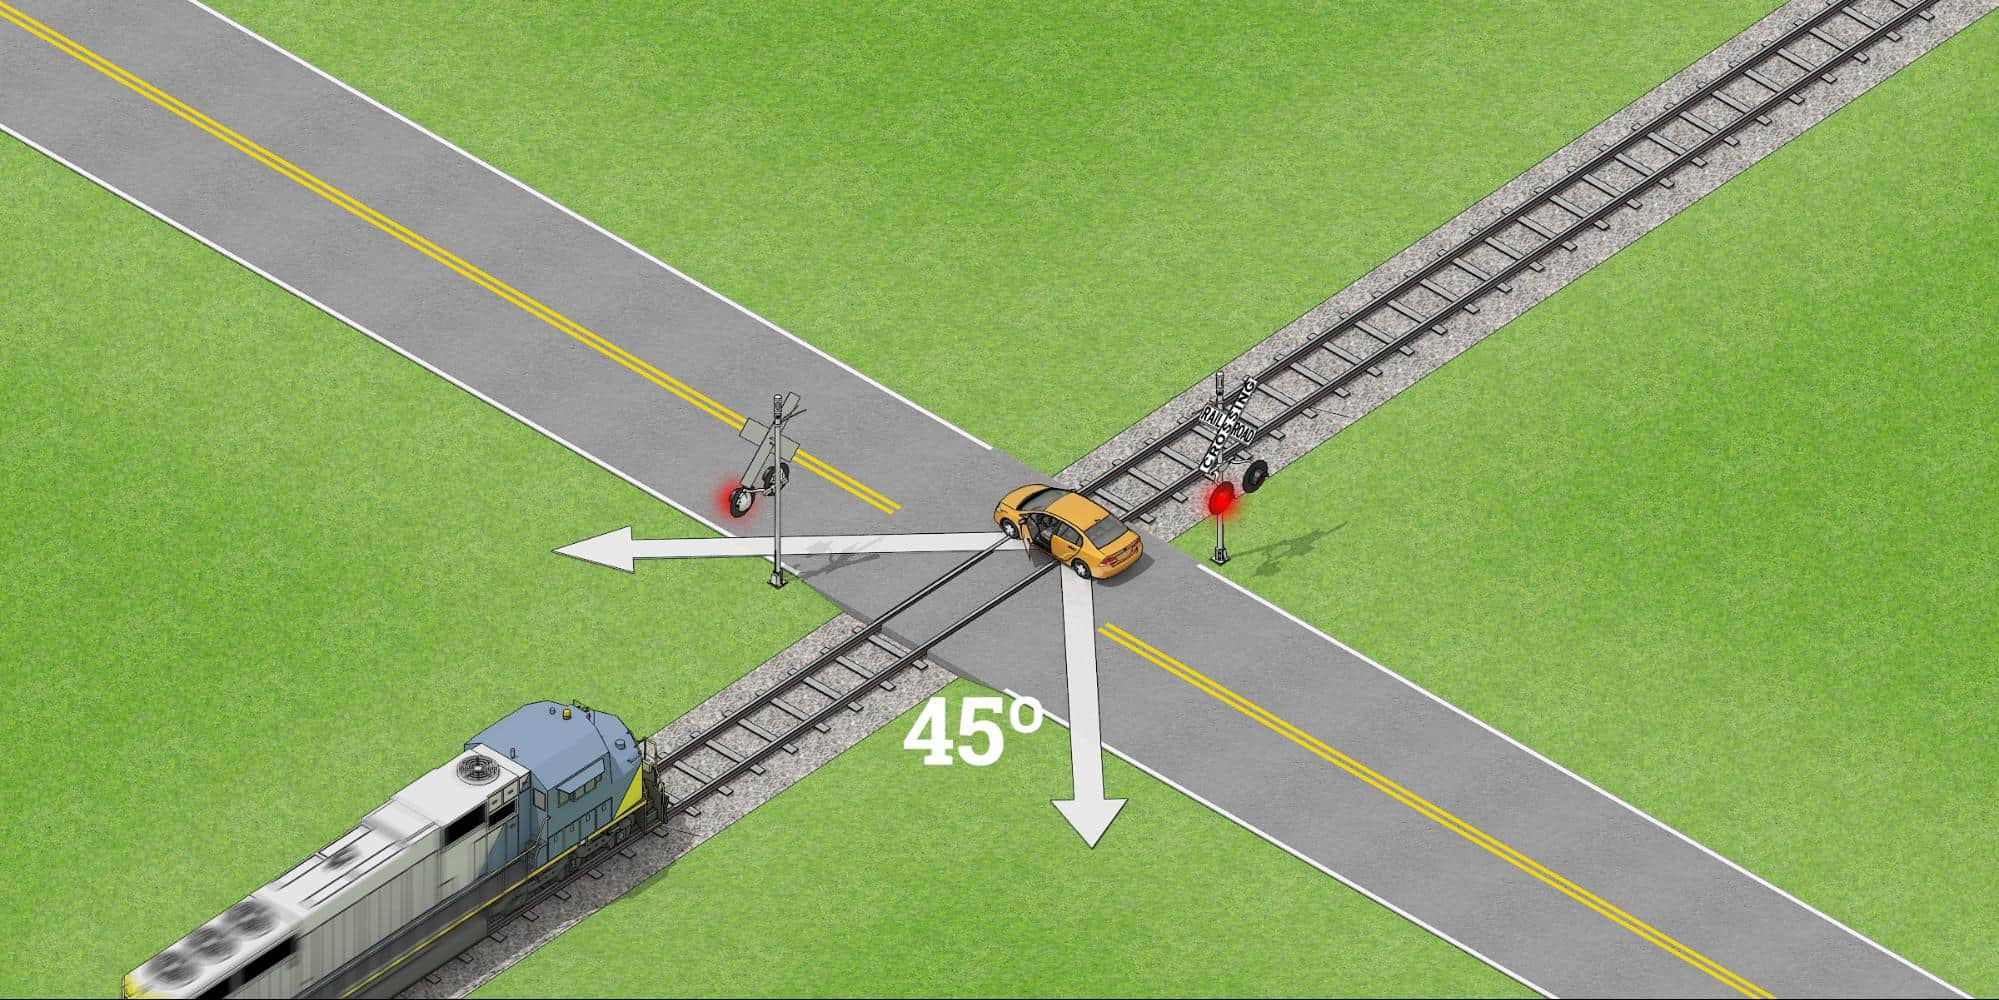 instructions how to run away if vehicle stalls on the railroad tracks